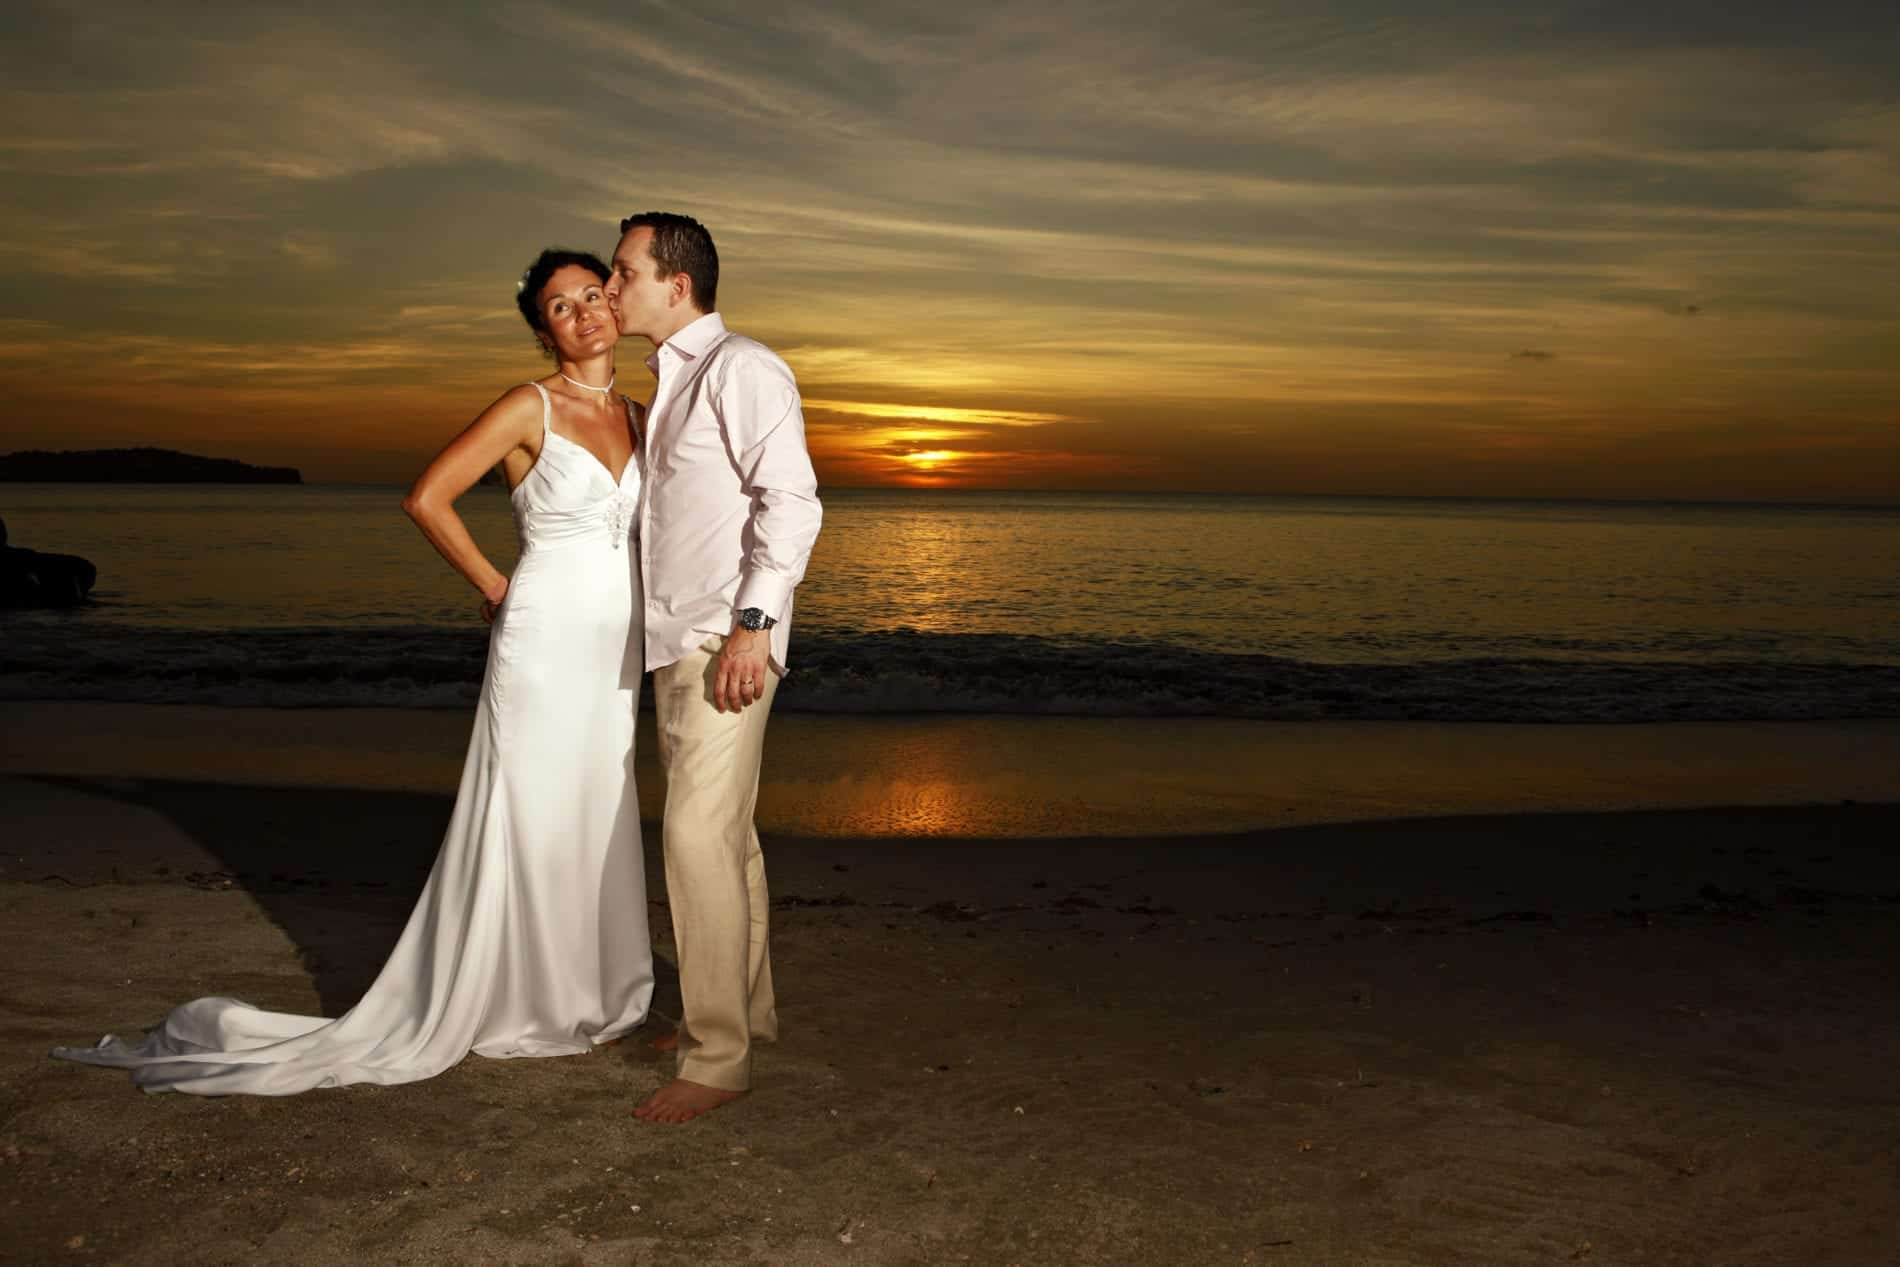 Destination wedding couple at sunset